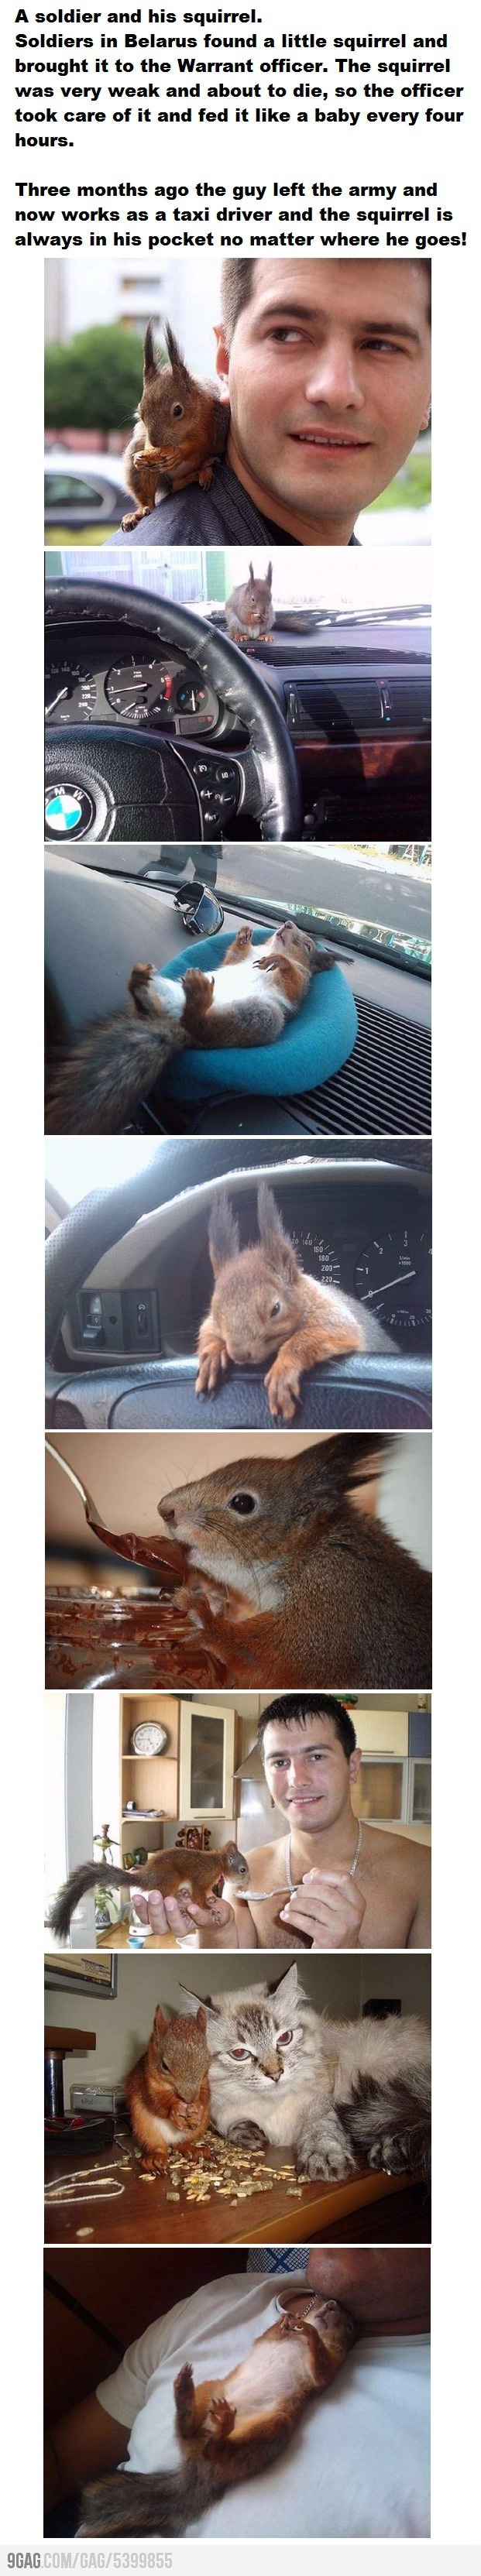 A soldier and his squirrel...currently crying at the adorableness